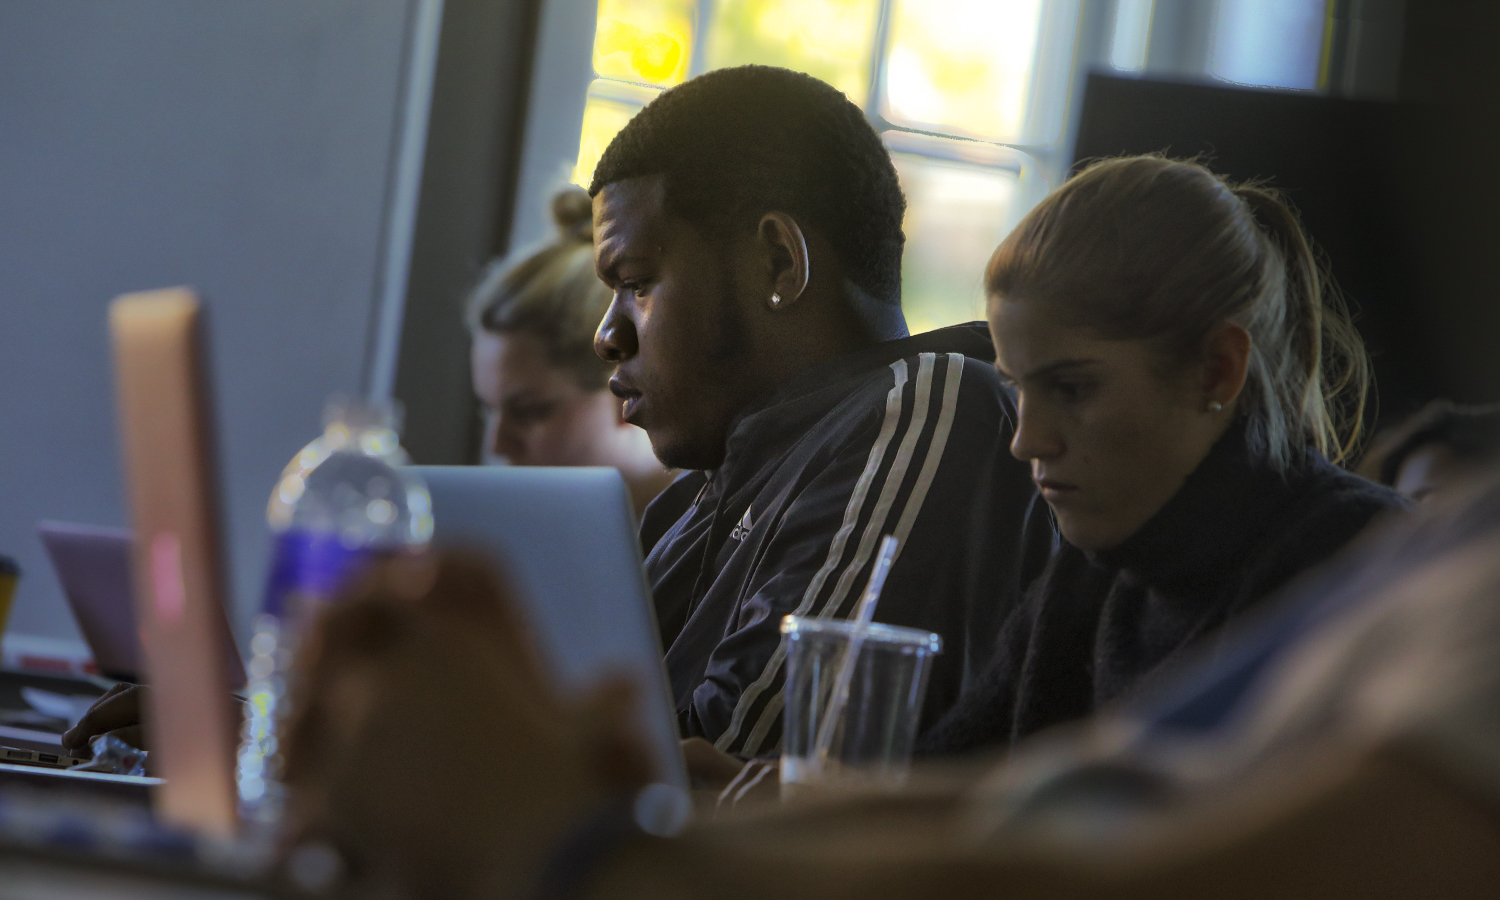 Shaamar Samuel â18 and X take live notes during a screening of James Balwinâs film âI Am Not Your Negroâ during âPerspectives of Educationâ with  VIsiting Assistant Professor of Education Jacob Bartholomew in Merritt Hall.